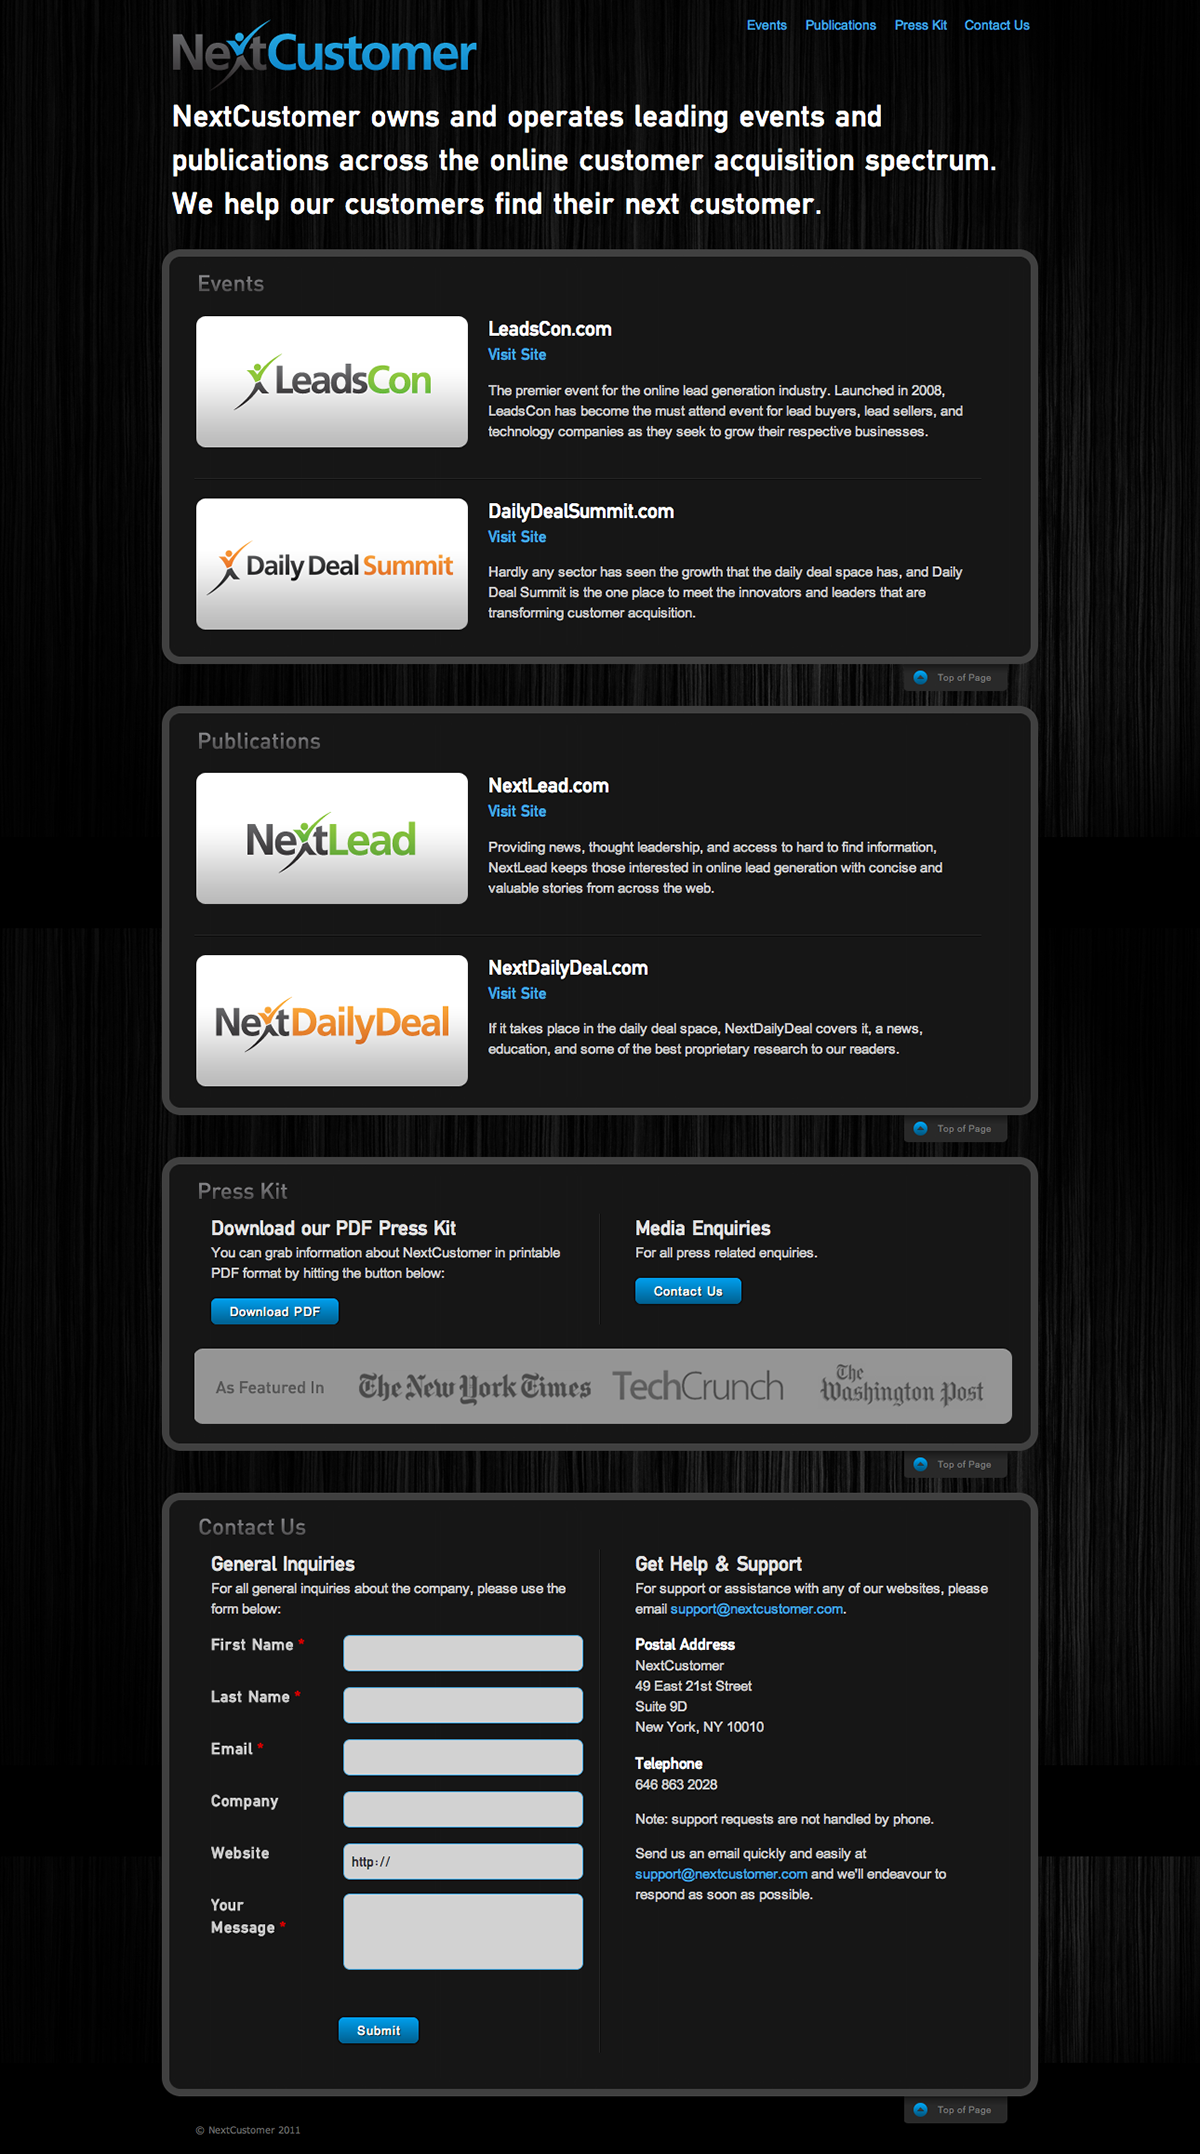 NextCustomer.com Single Page Website Design